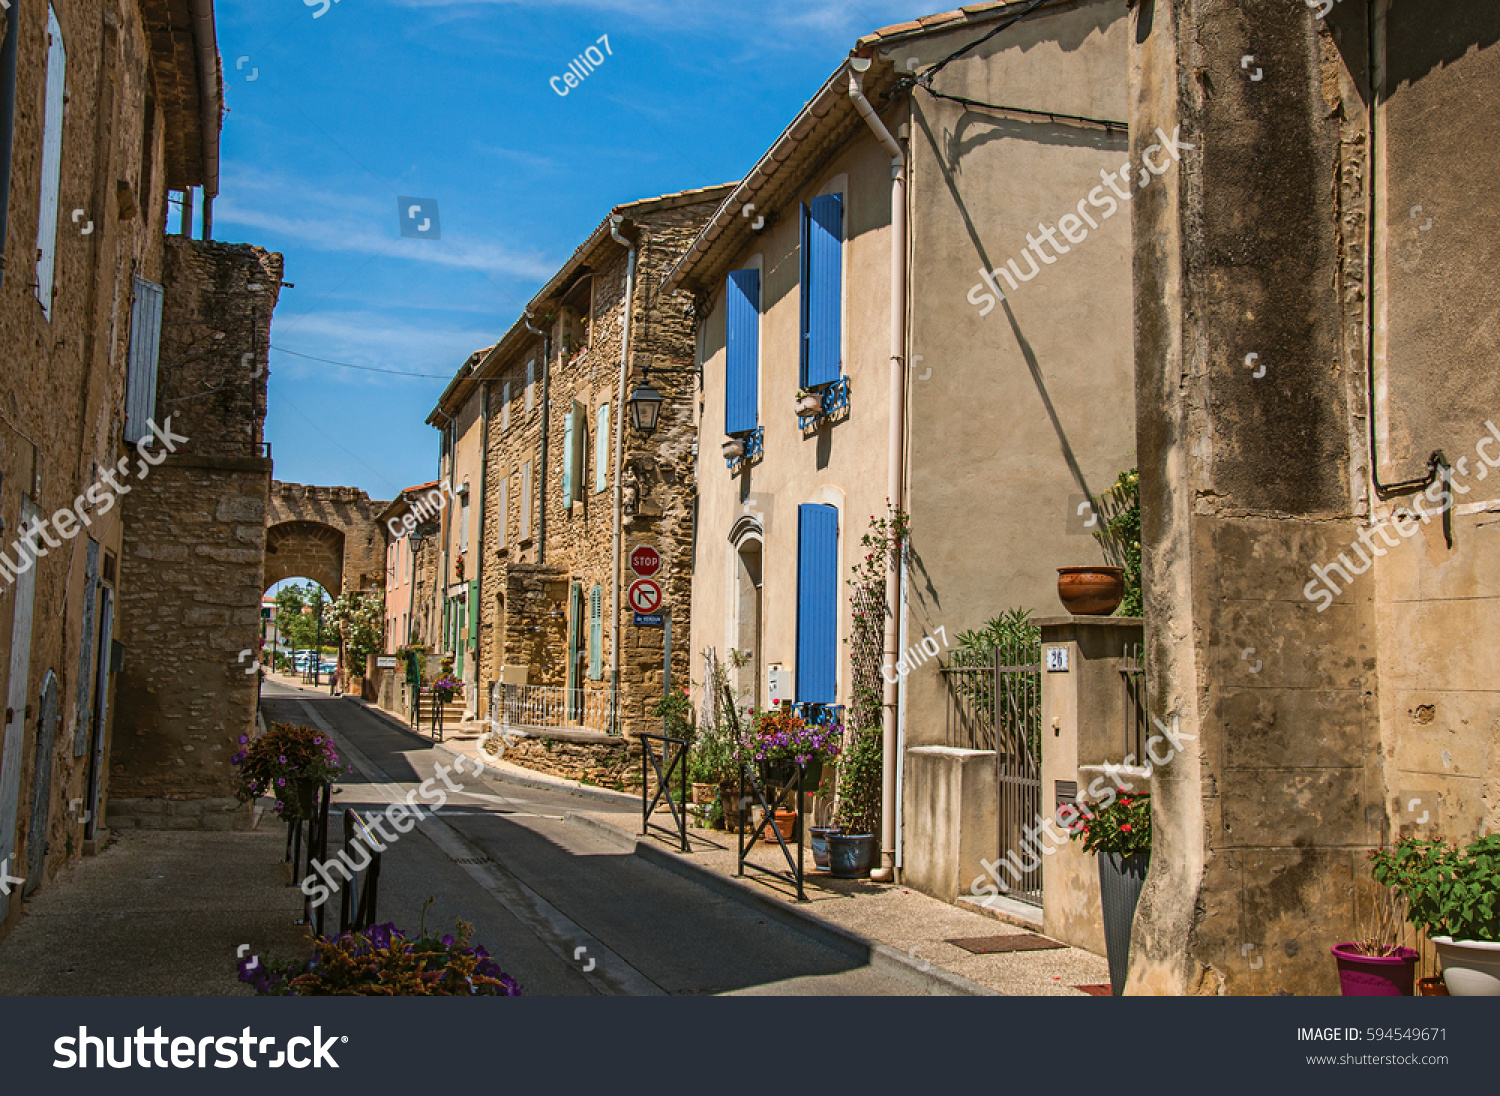 france july 02 2016 street view stock photo 594549671 shutterstock. Black Bedroom Furniture Sets. Home Design Ideas